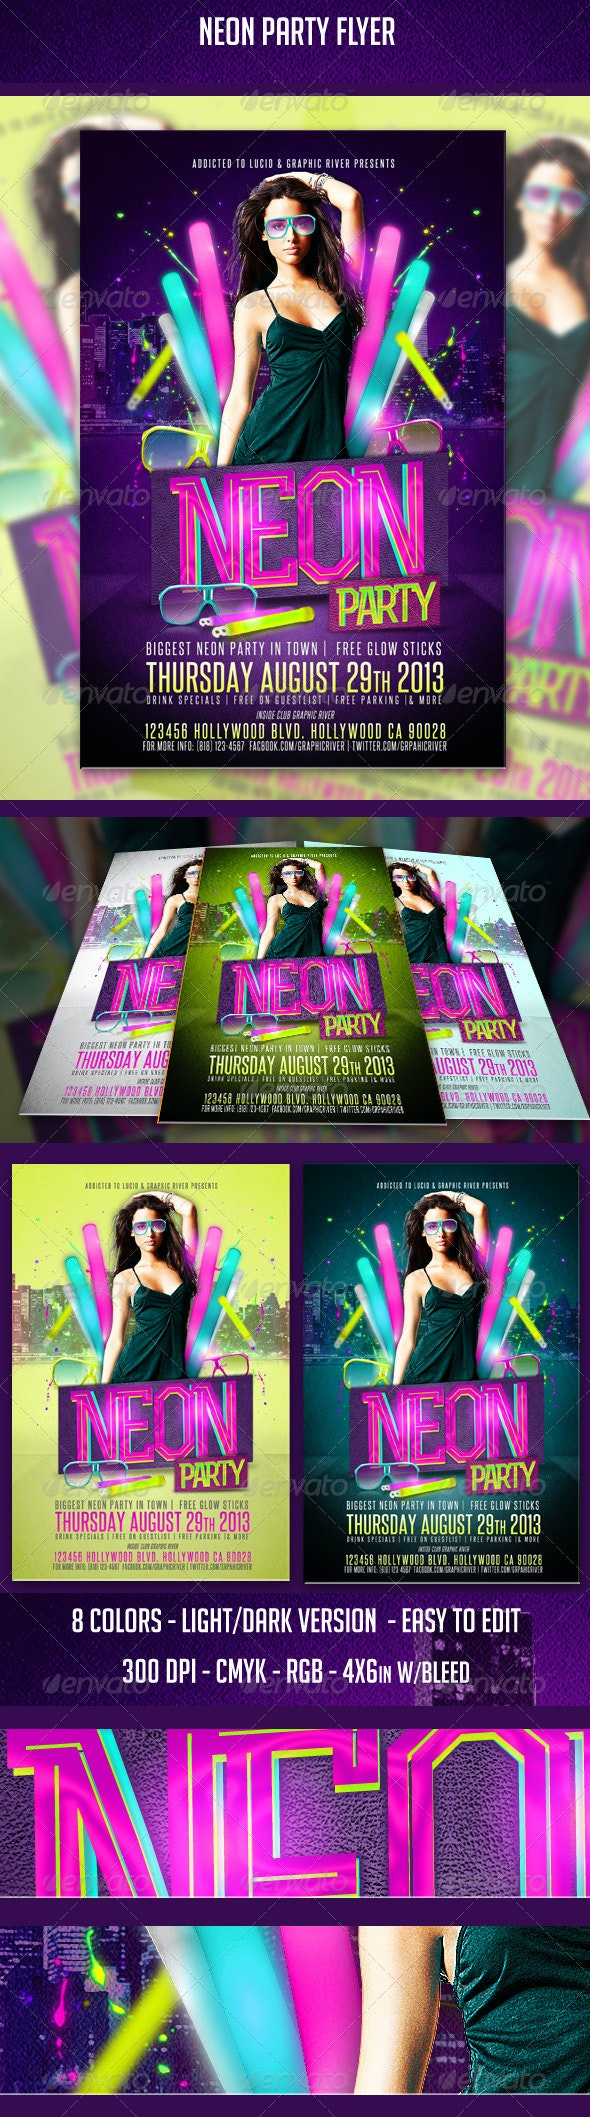 Neon Party Flyer - Clubs & Parties Events